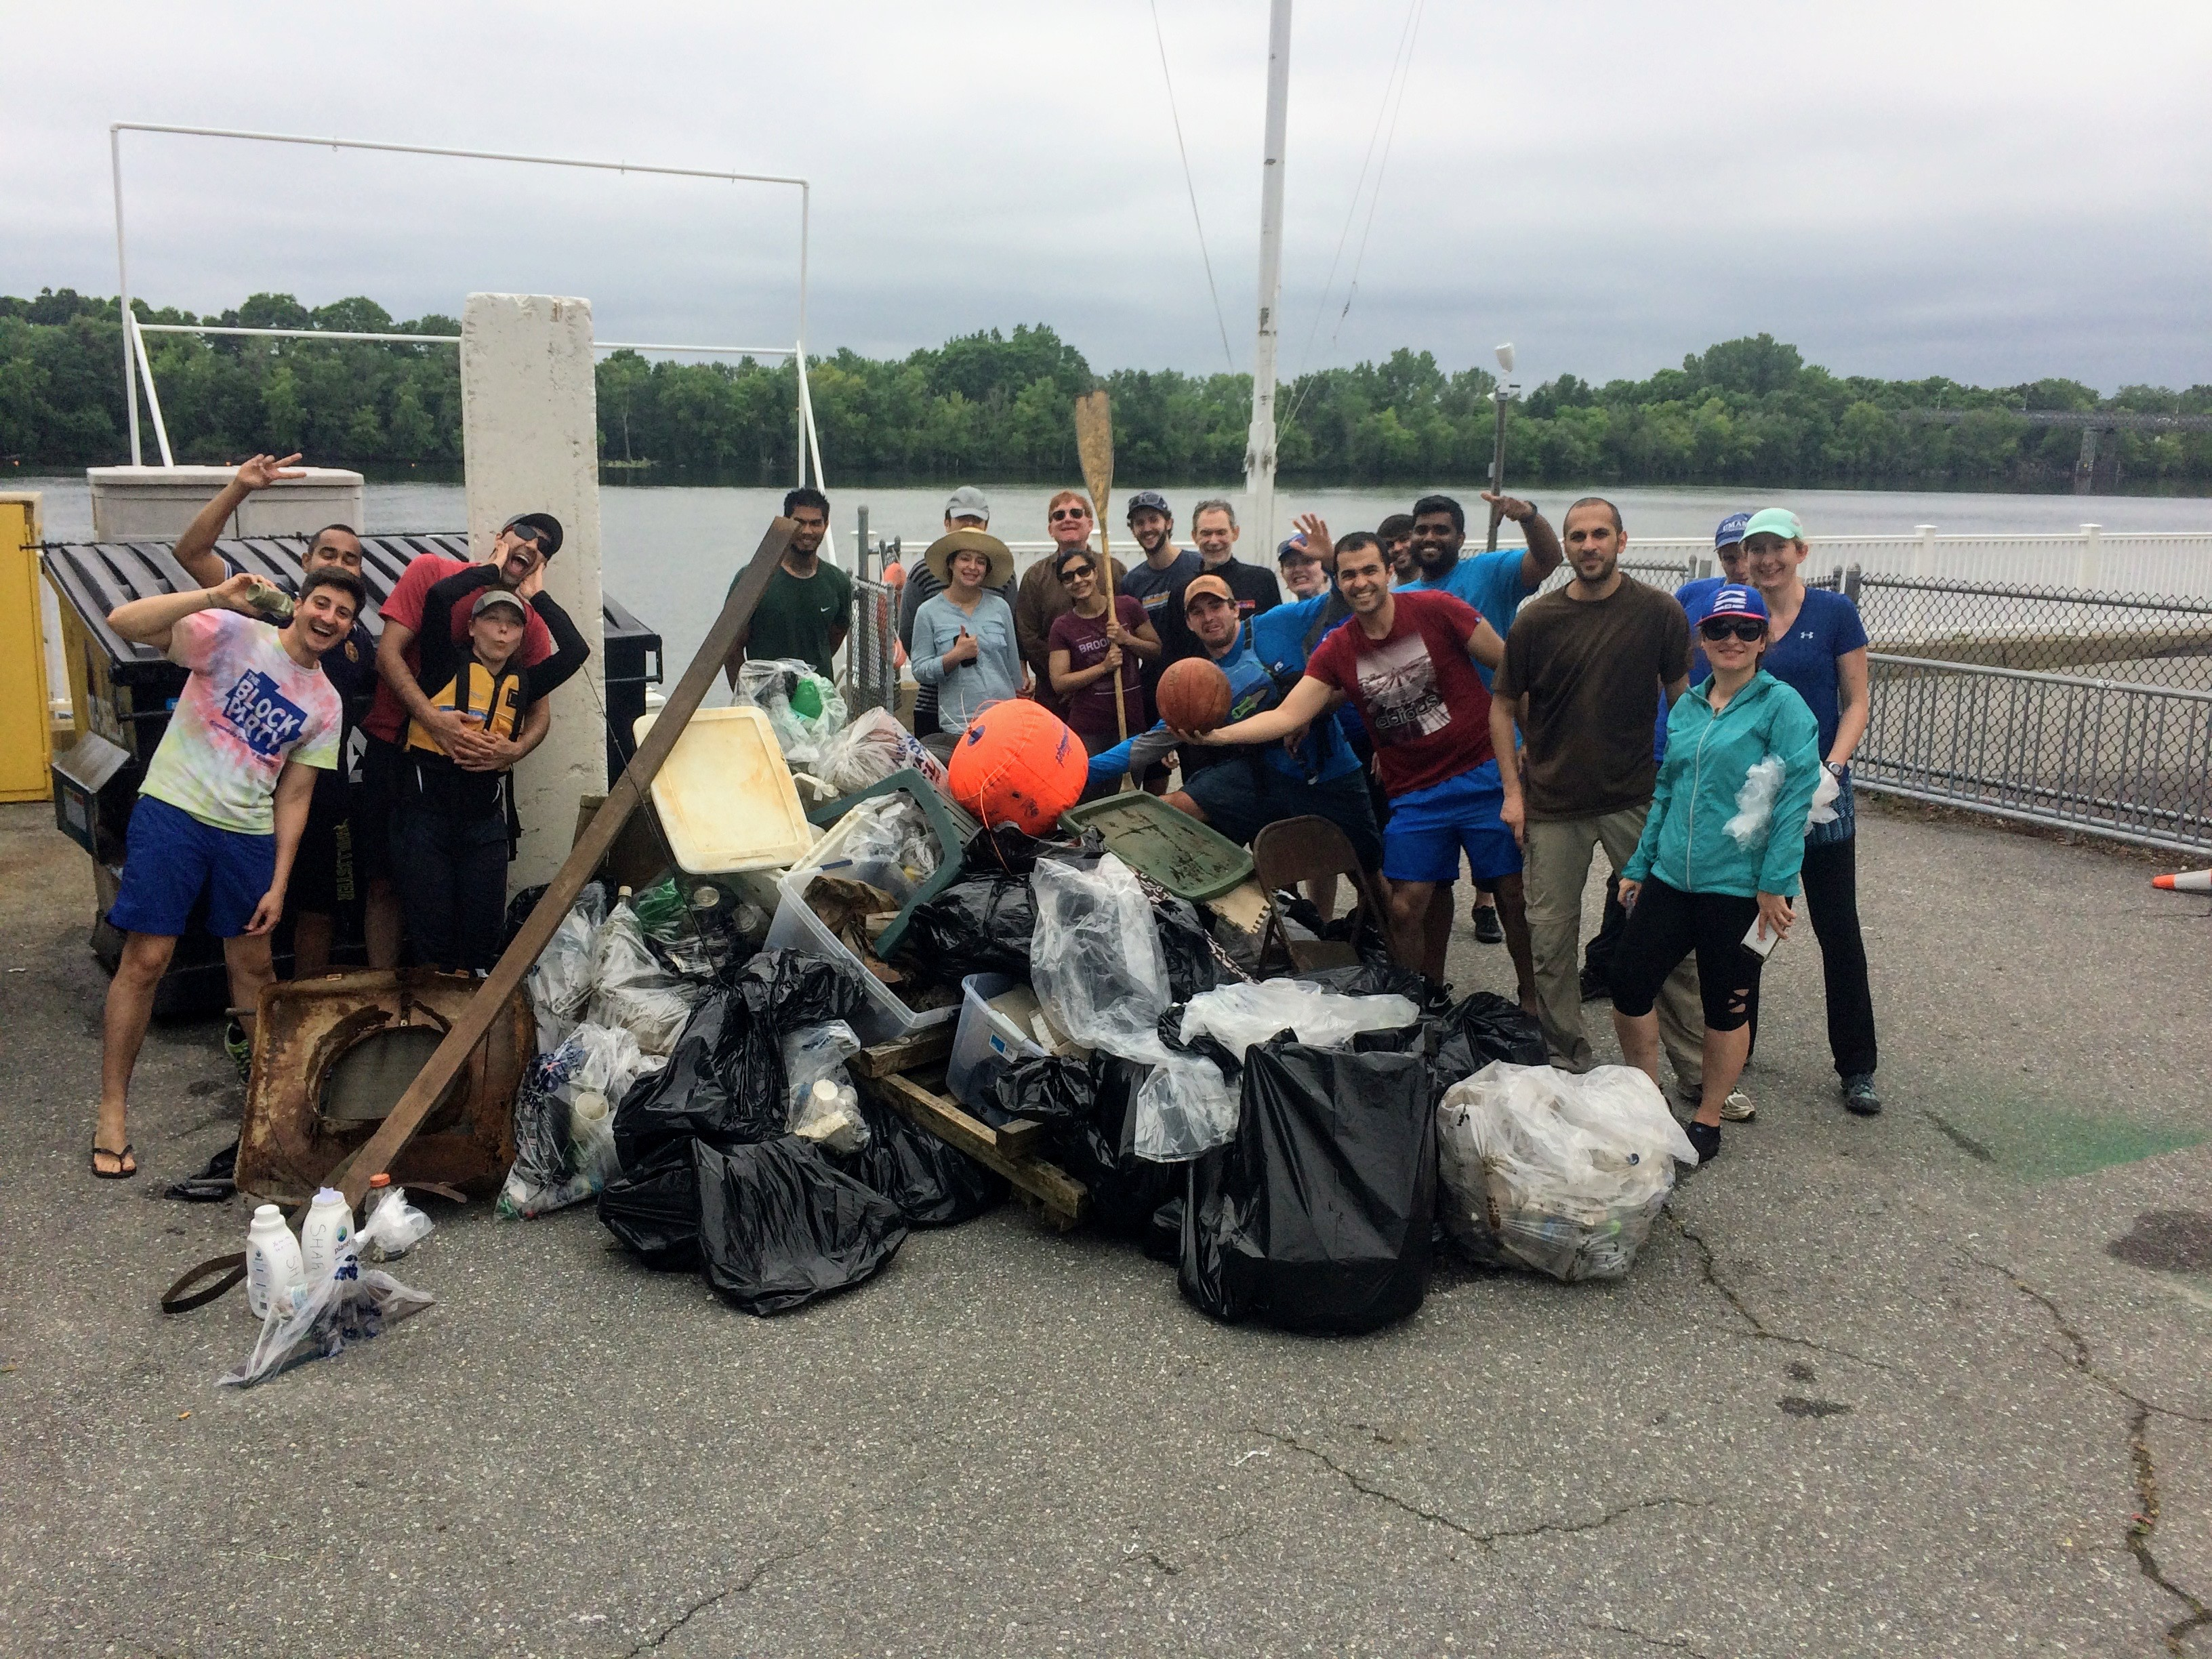 Proud group of people gathered around a large pile of debris they removed from the river bank.